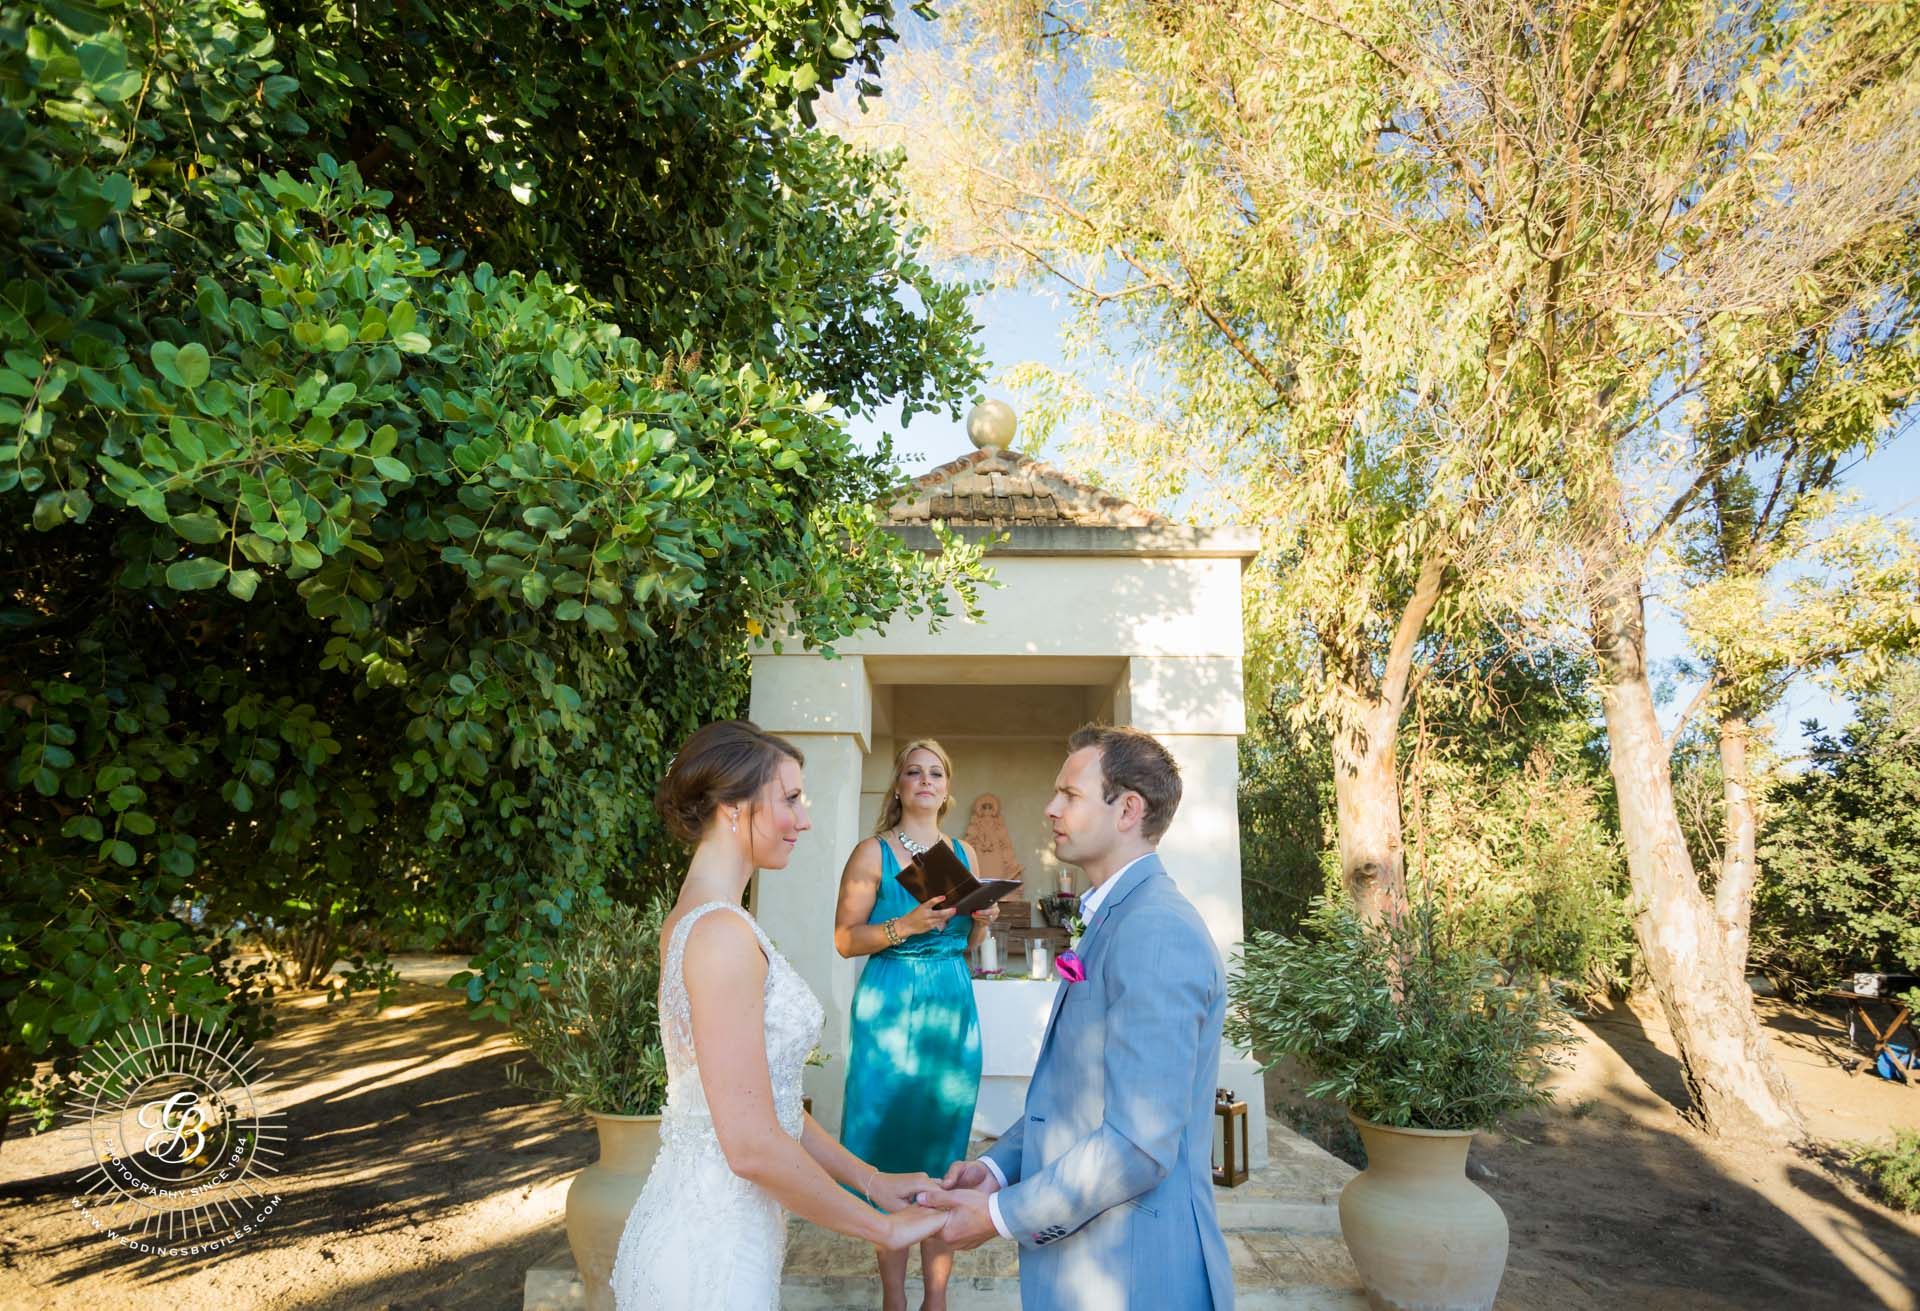 wedding ceremony at the Hacienda de San Rafael